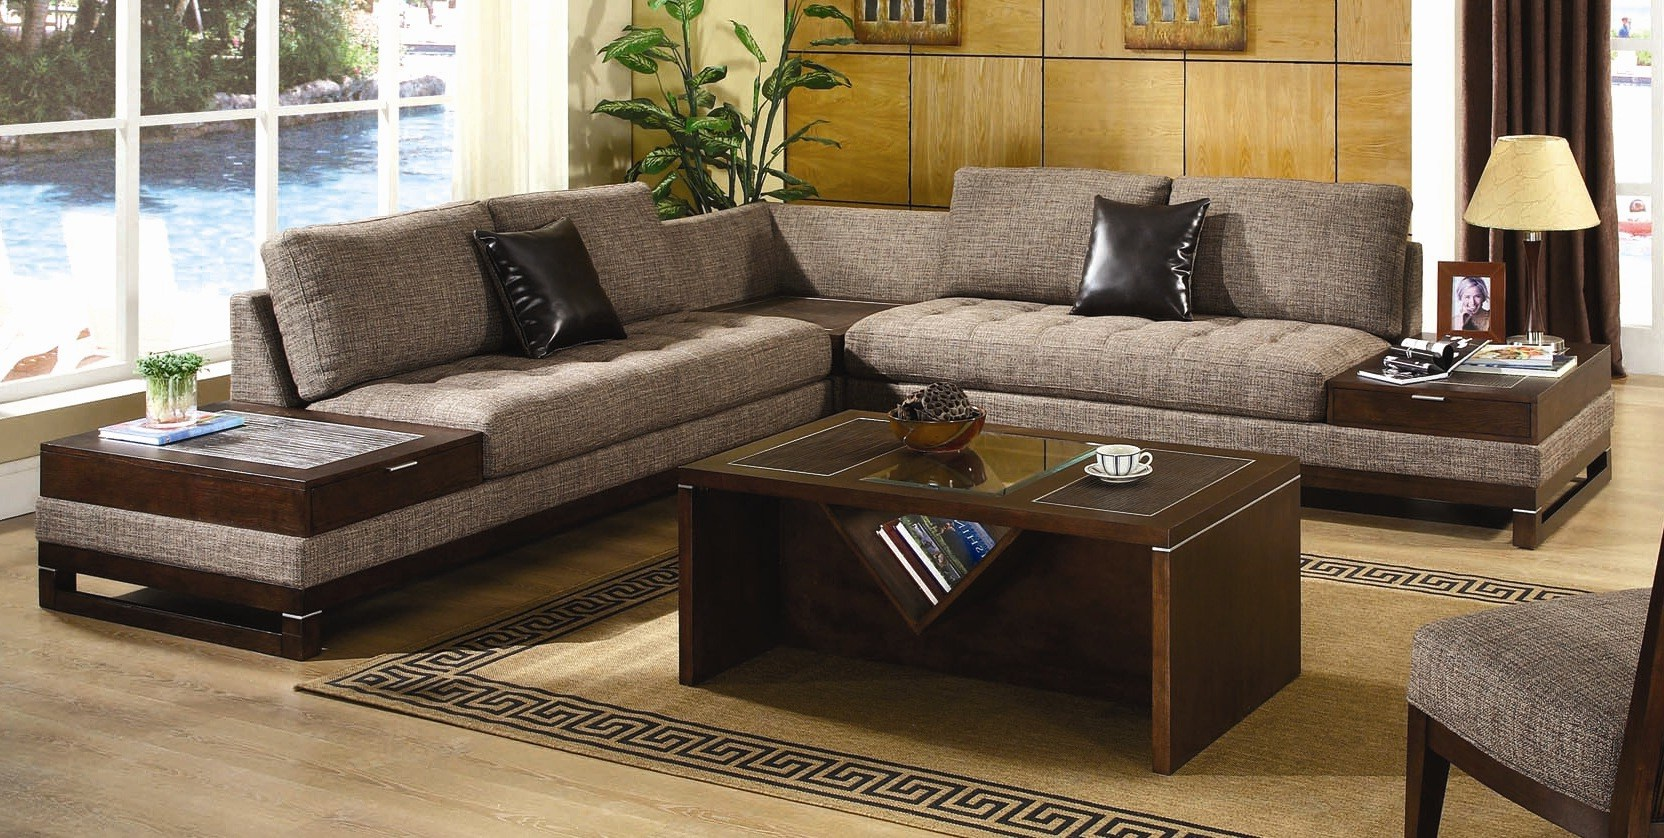 3 piece coffee table sets under 200 for Living room 3